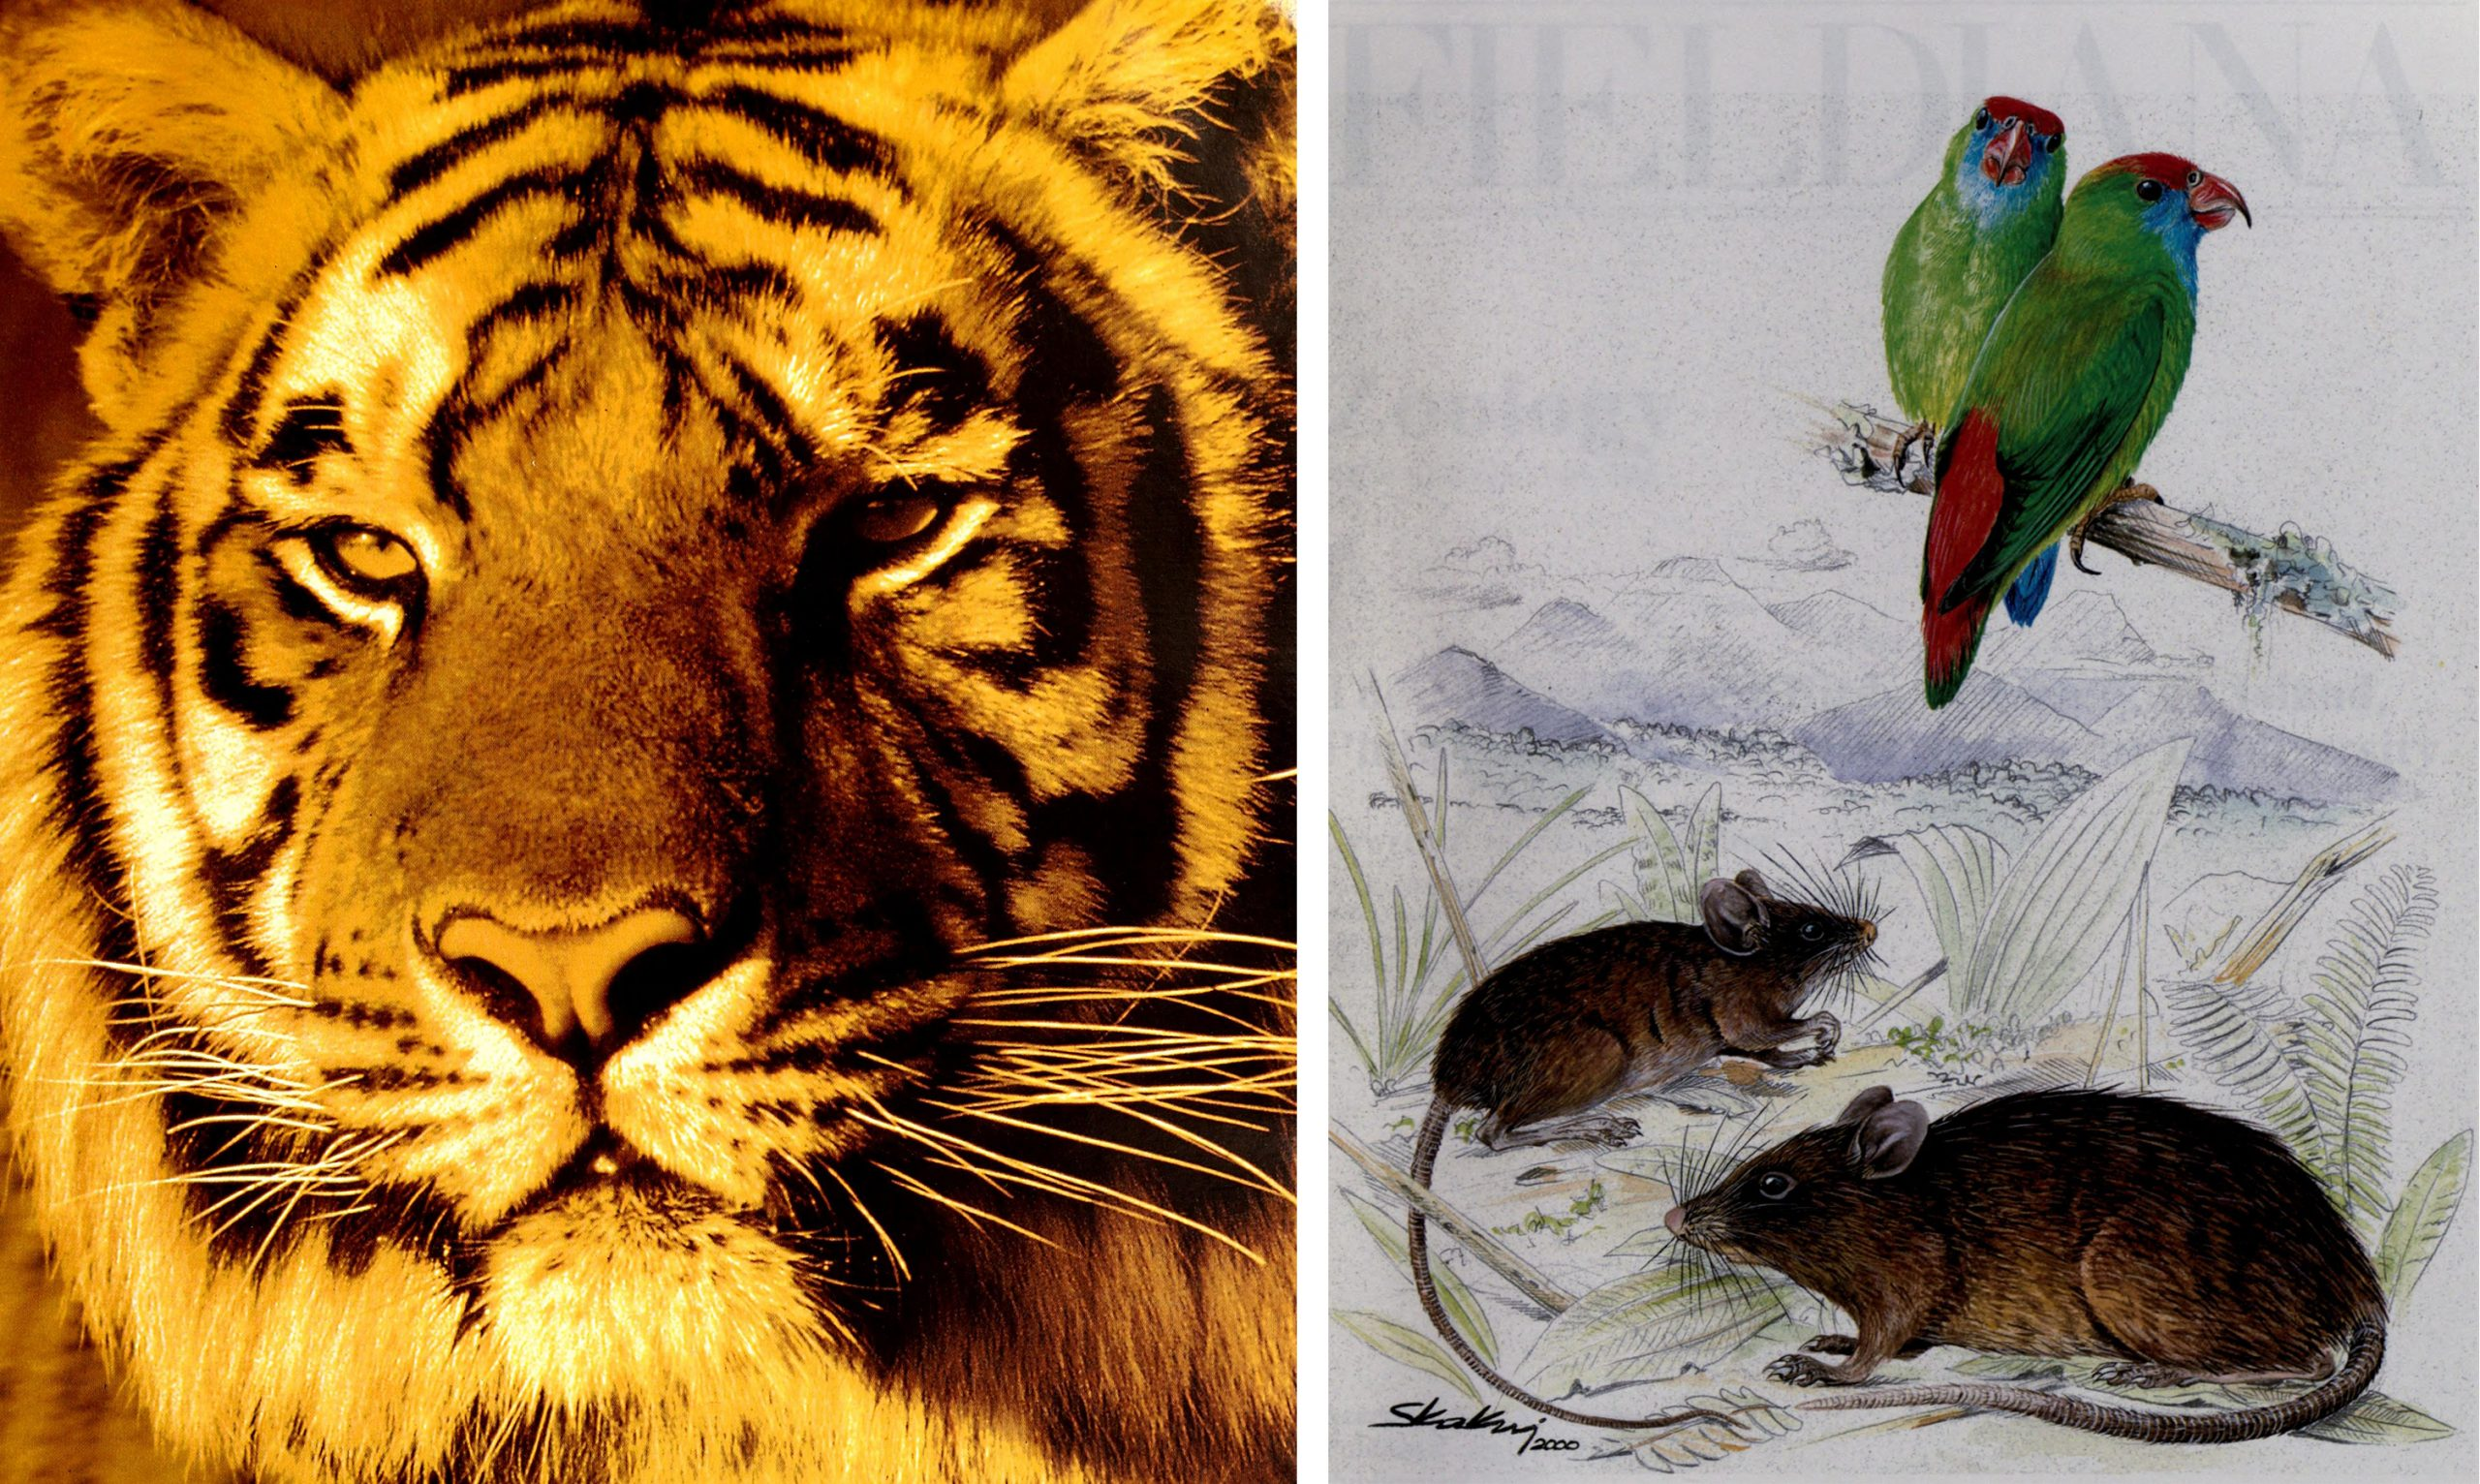 photo of a tiger and illustration of green and red birds and brown rodents